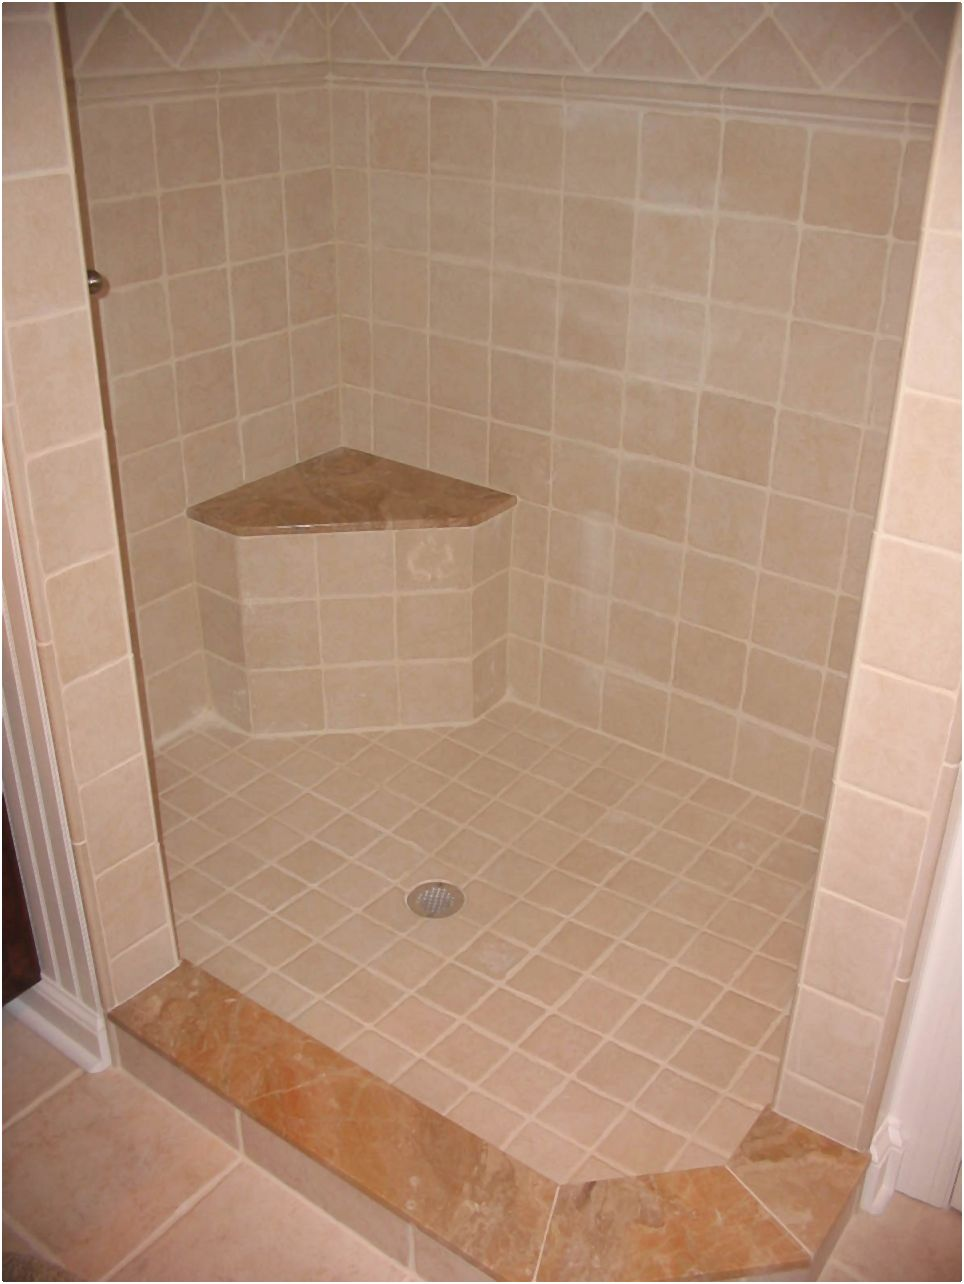 Tiled-Shower-Ideas-For-Bathrooms-Ideas-On-A-Budget-With-Corner-Seat-Top-Bathroom-Tile-Ideas